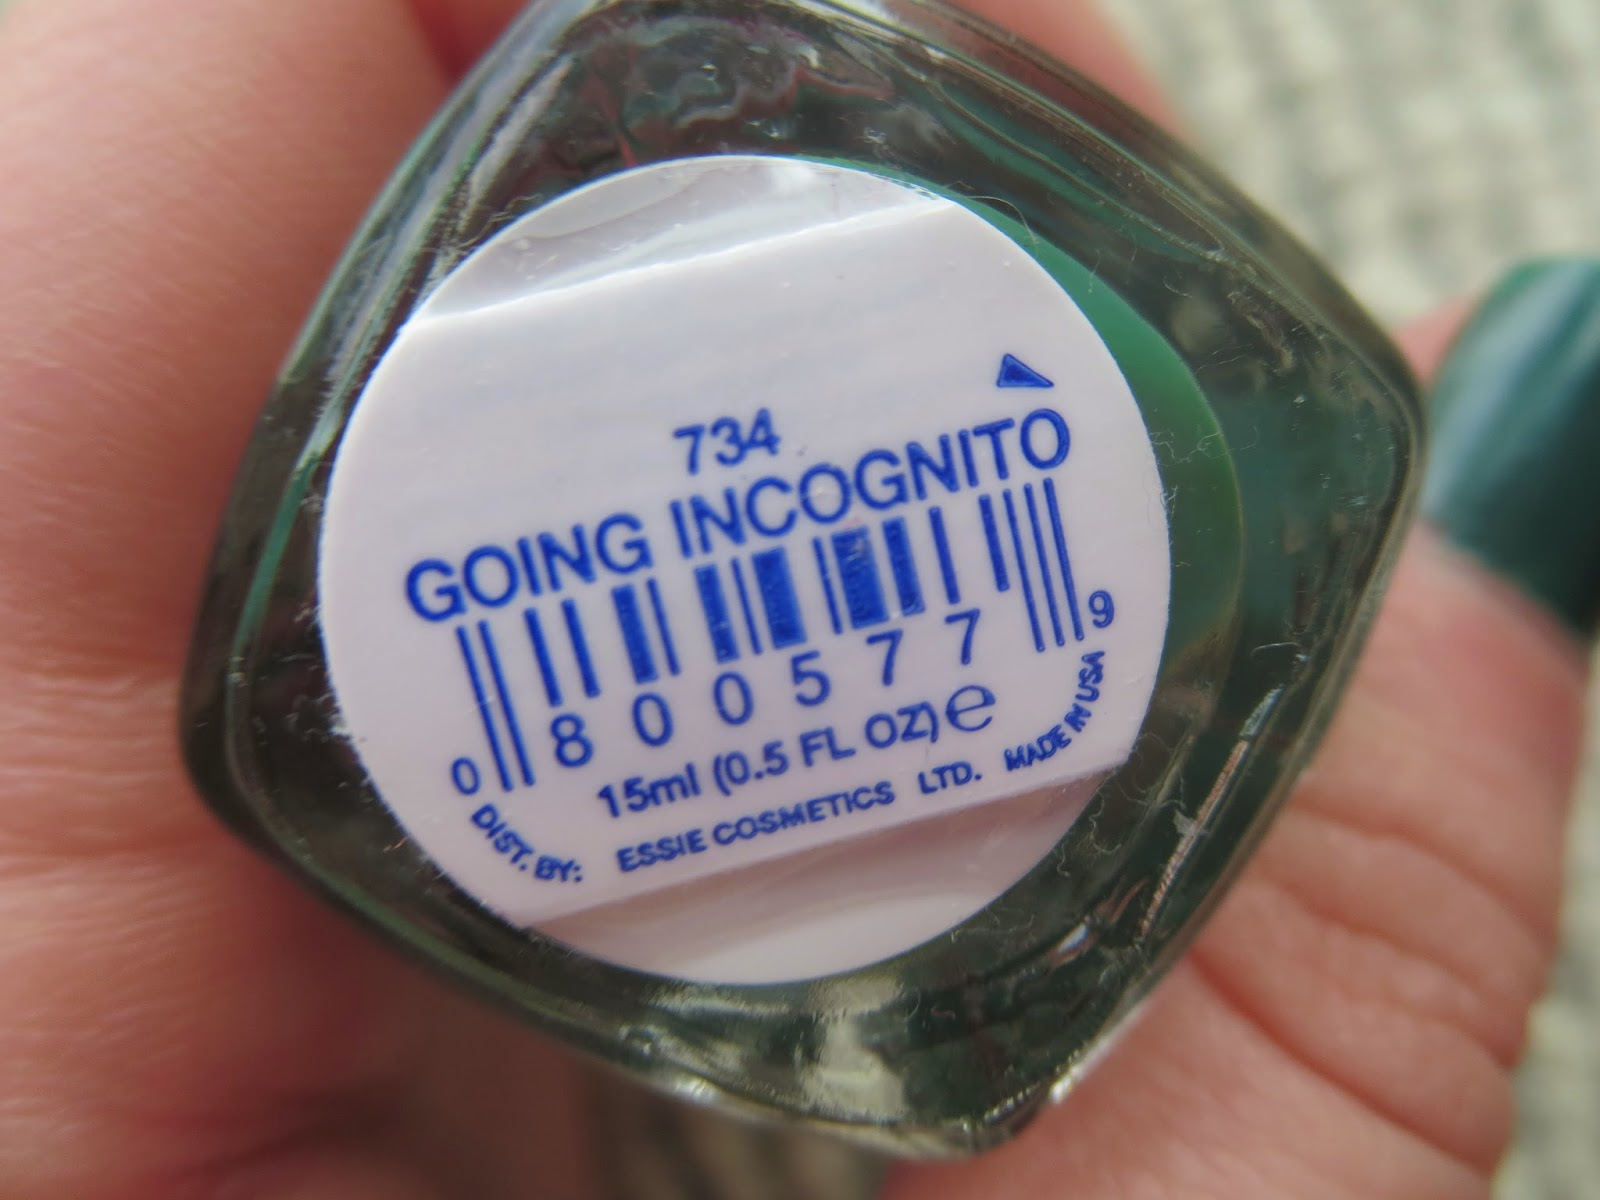 a picture of Essie Going Incognito nail polish